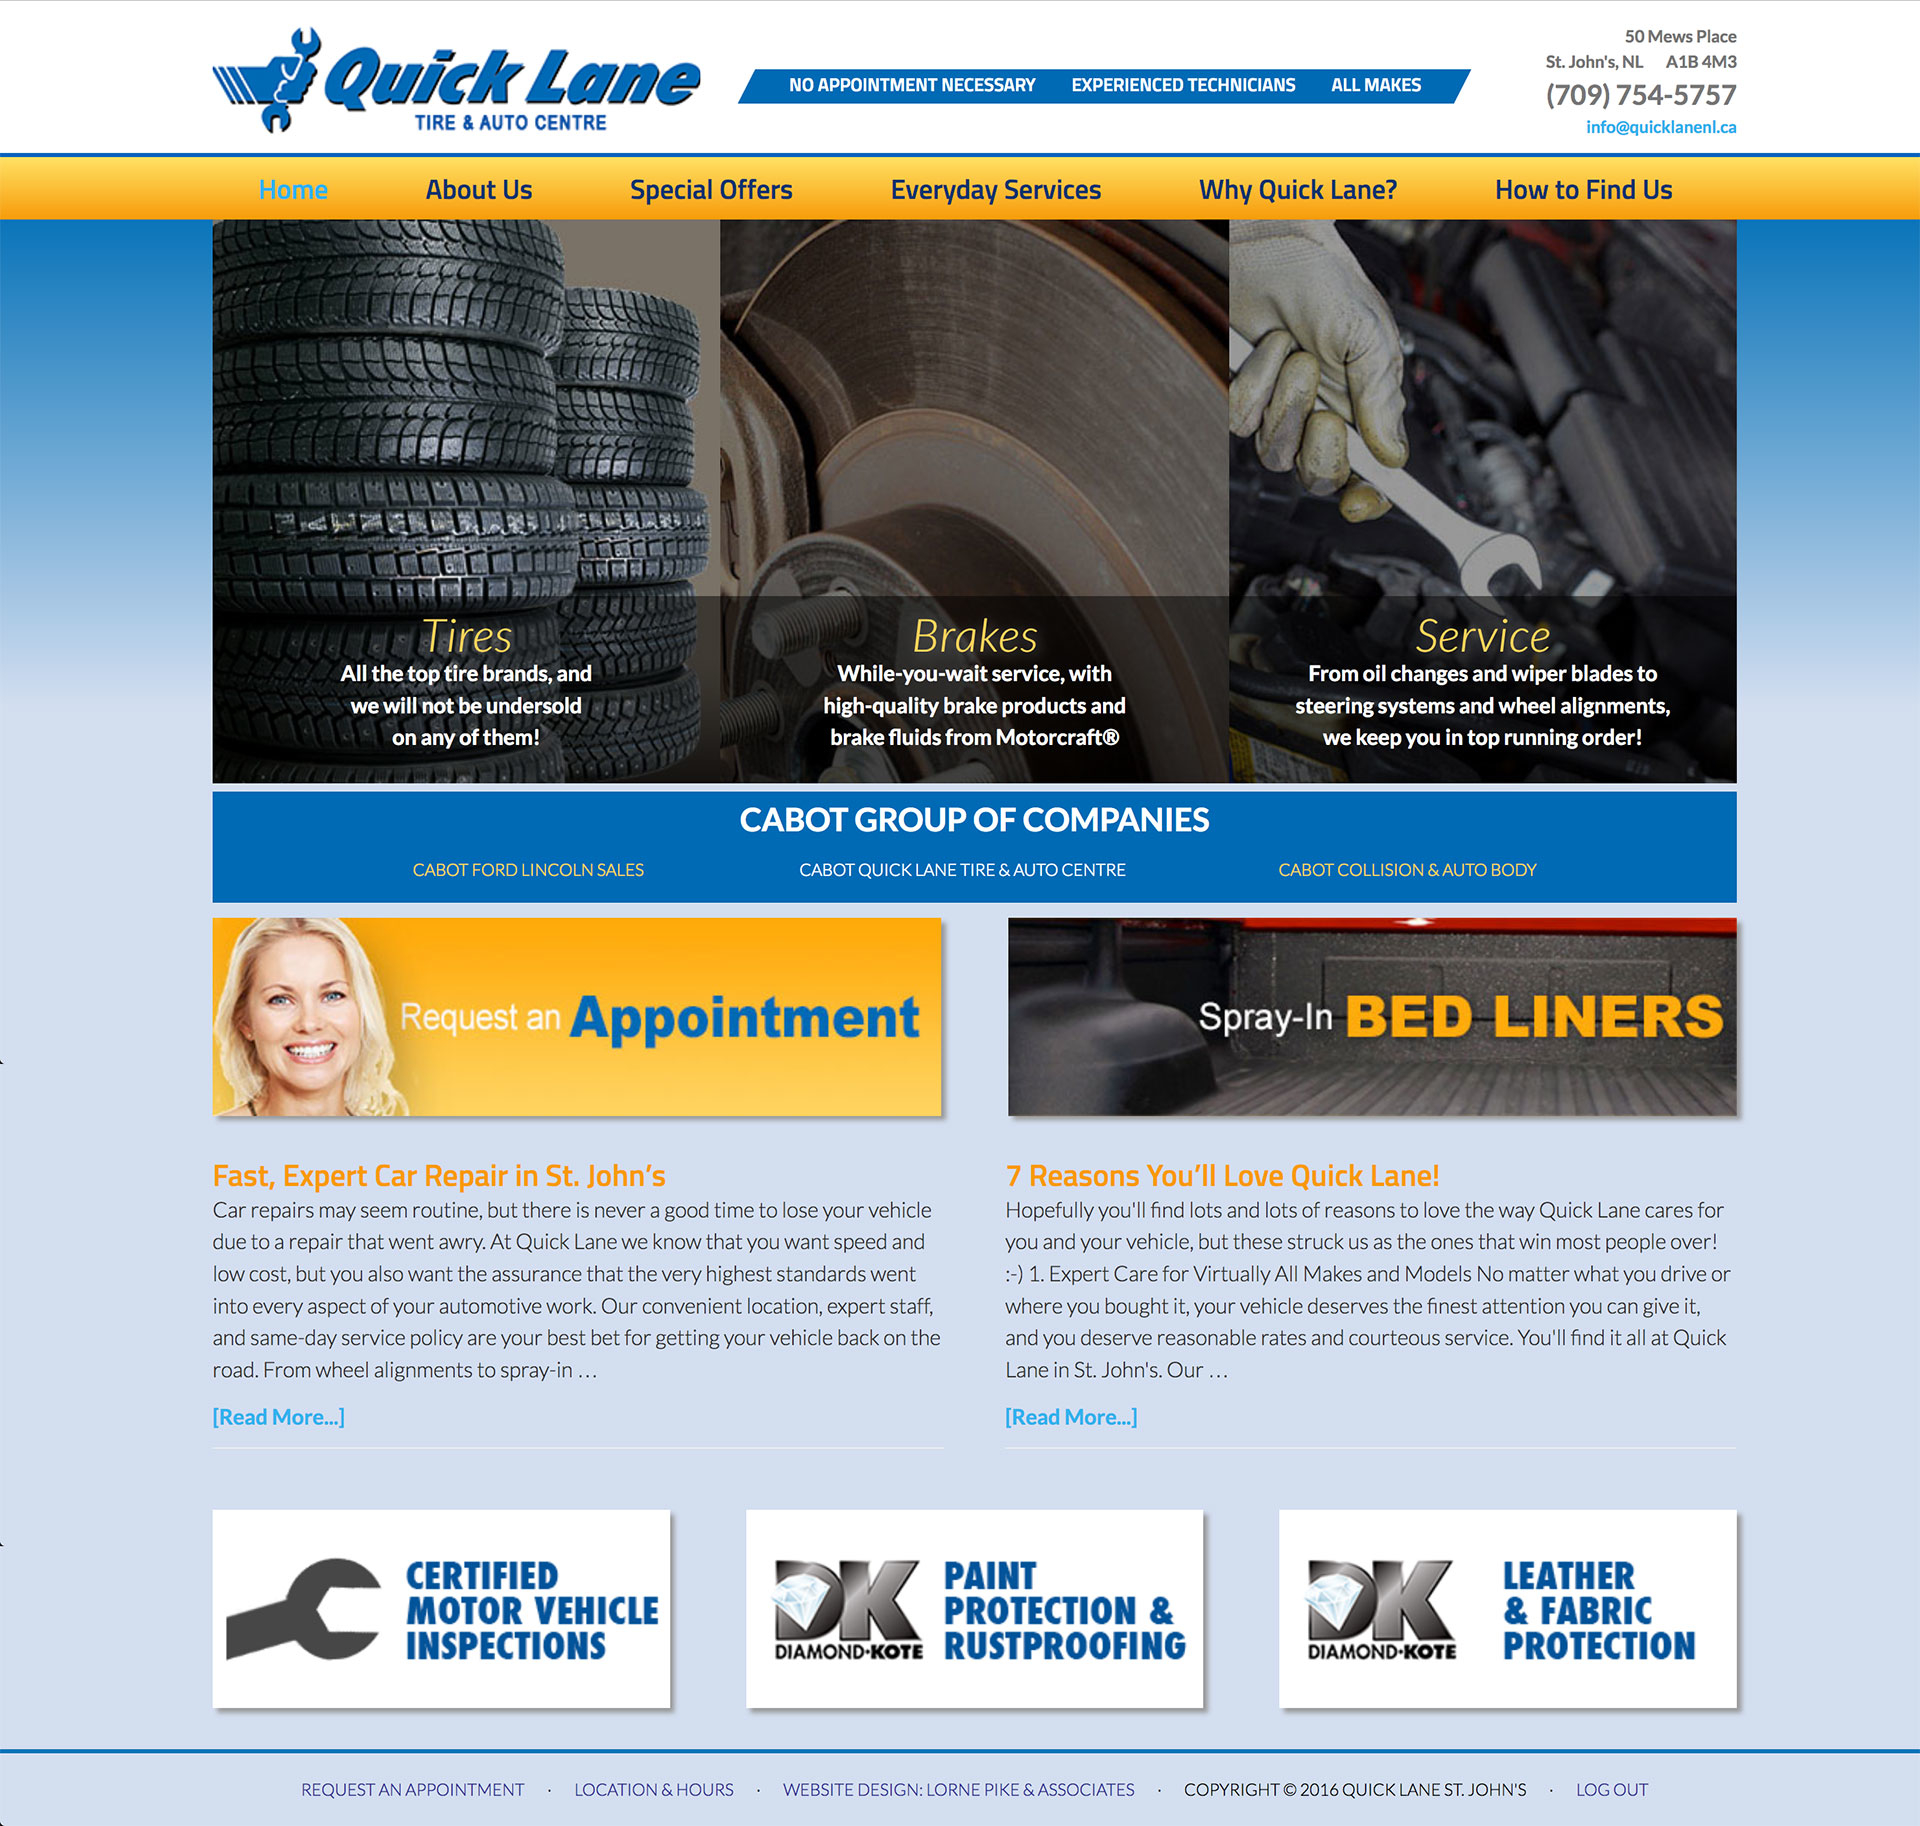 Lorne Pike & Associates in St. John's: This website design captures Quick Lane's broad range of services in St. John's, in a friendly site that reflected the brand's national style.